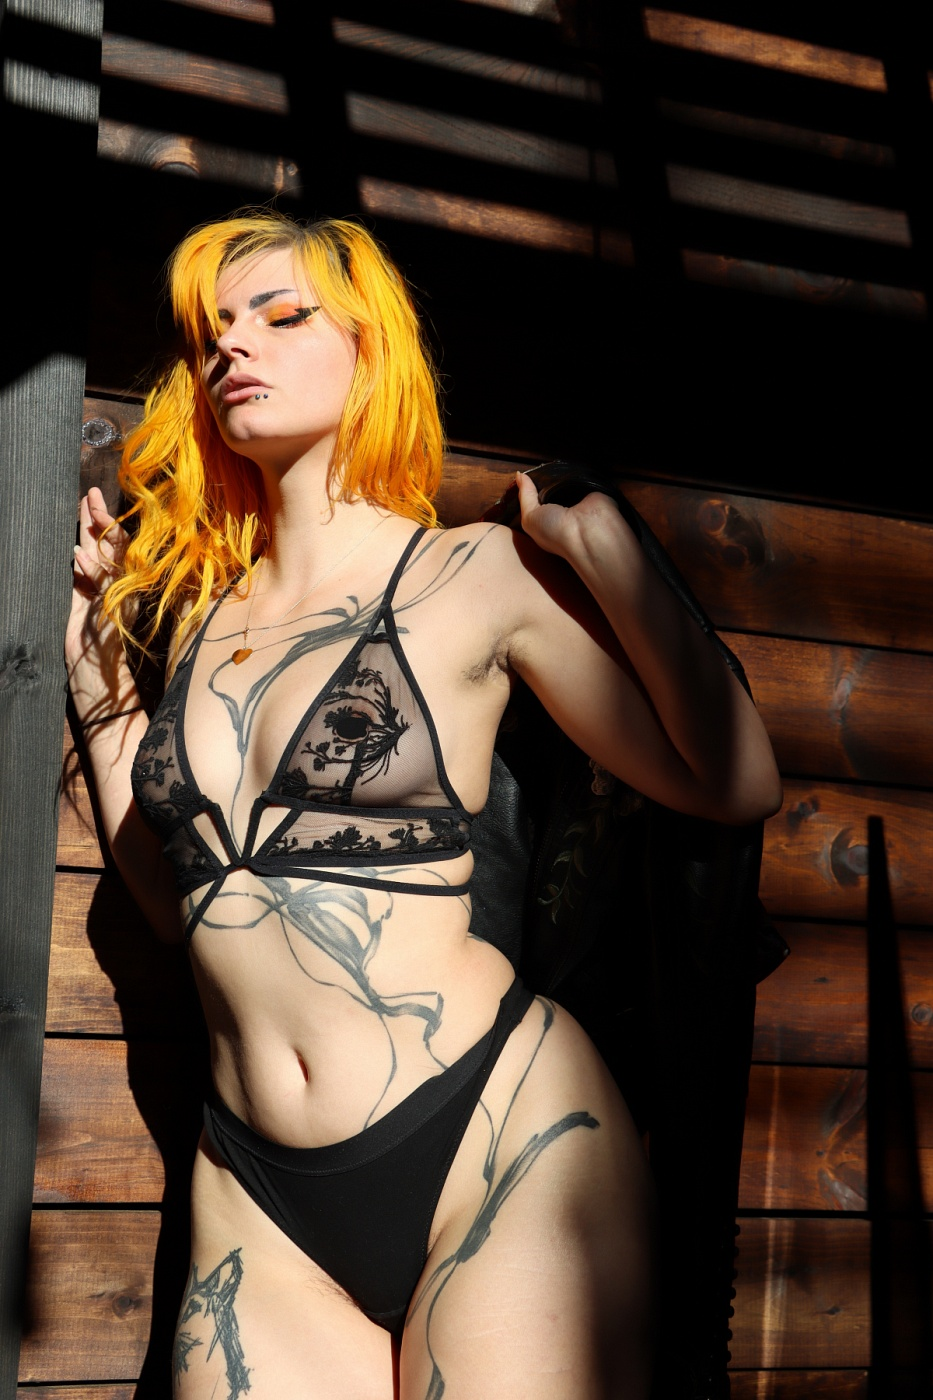 Lilith Vale